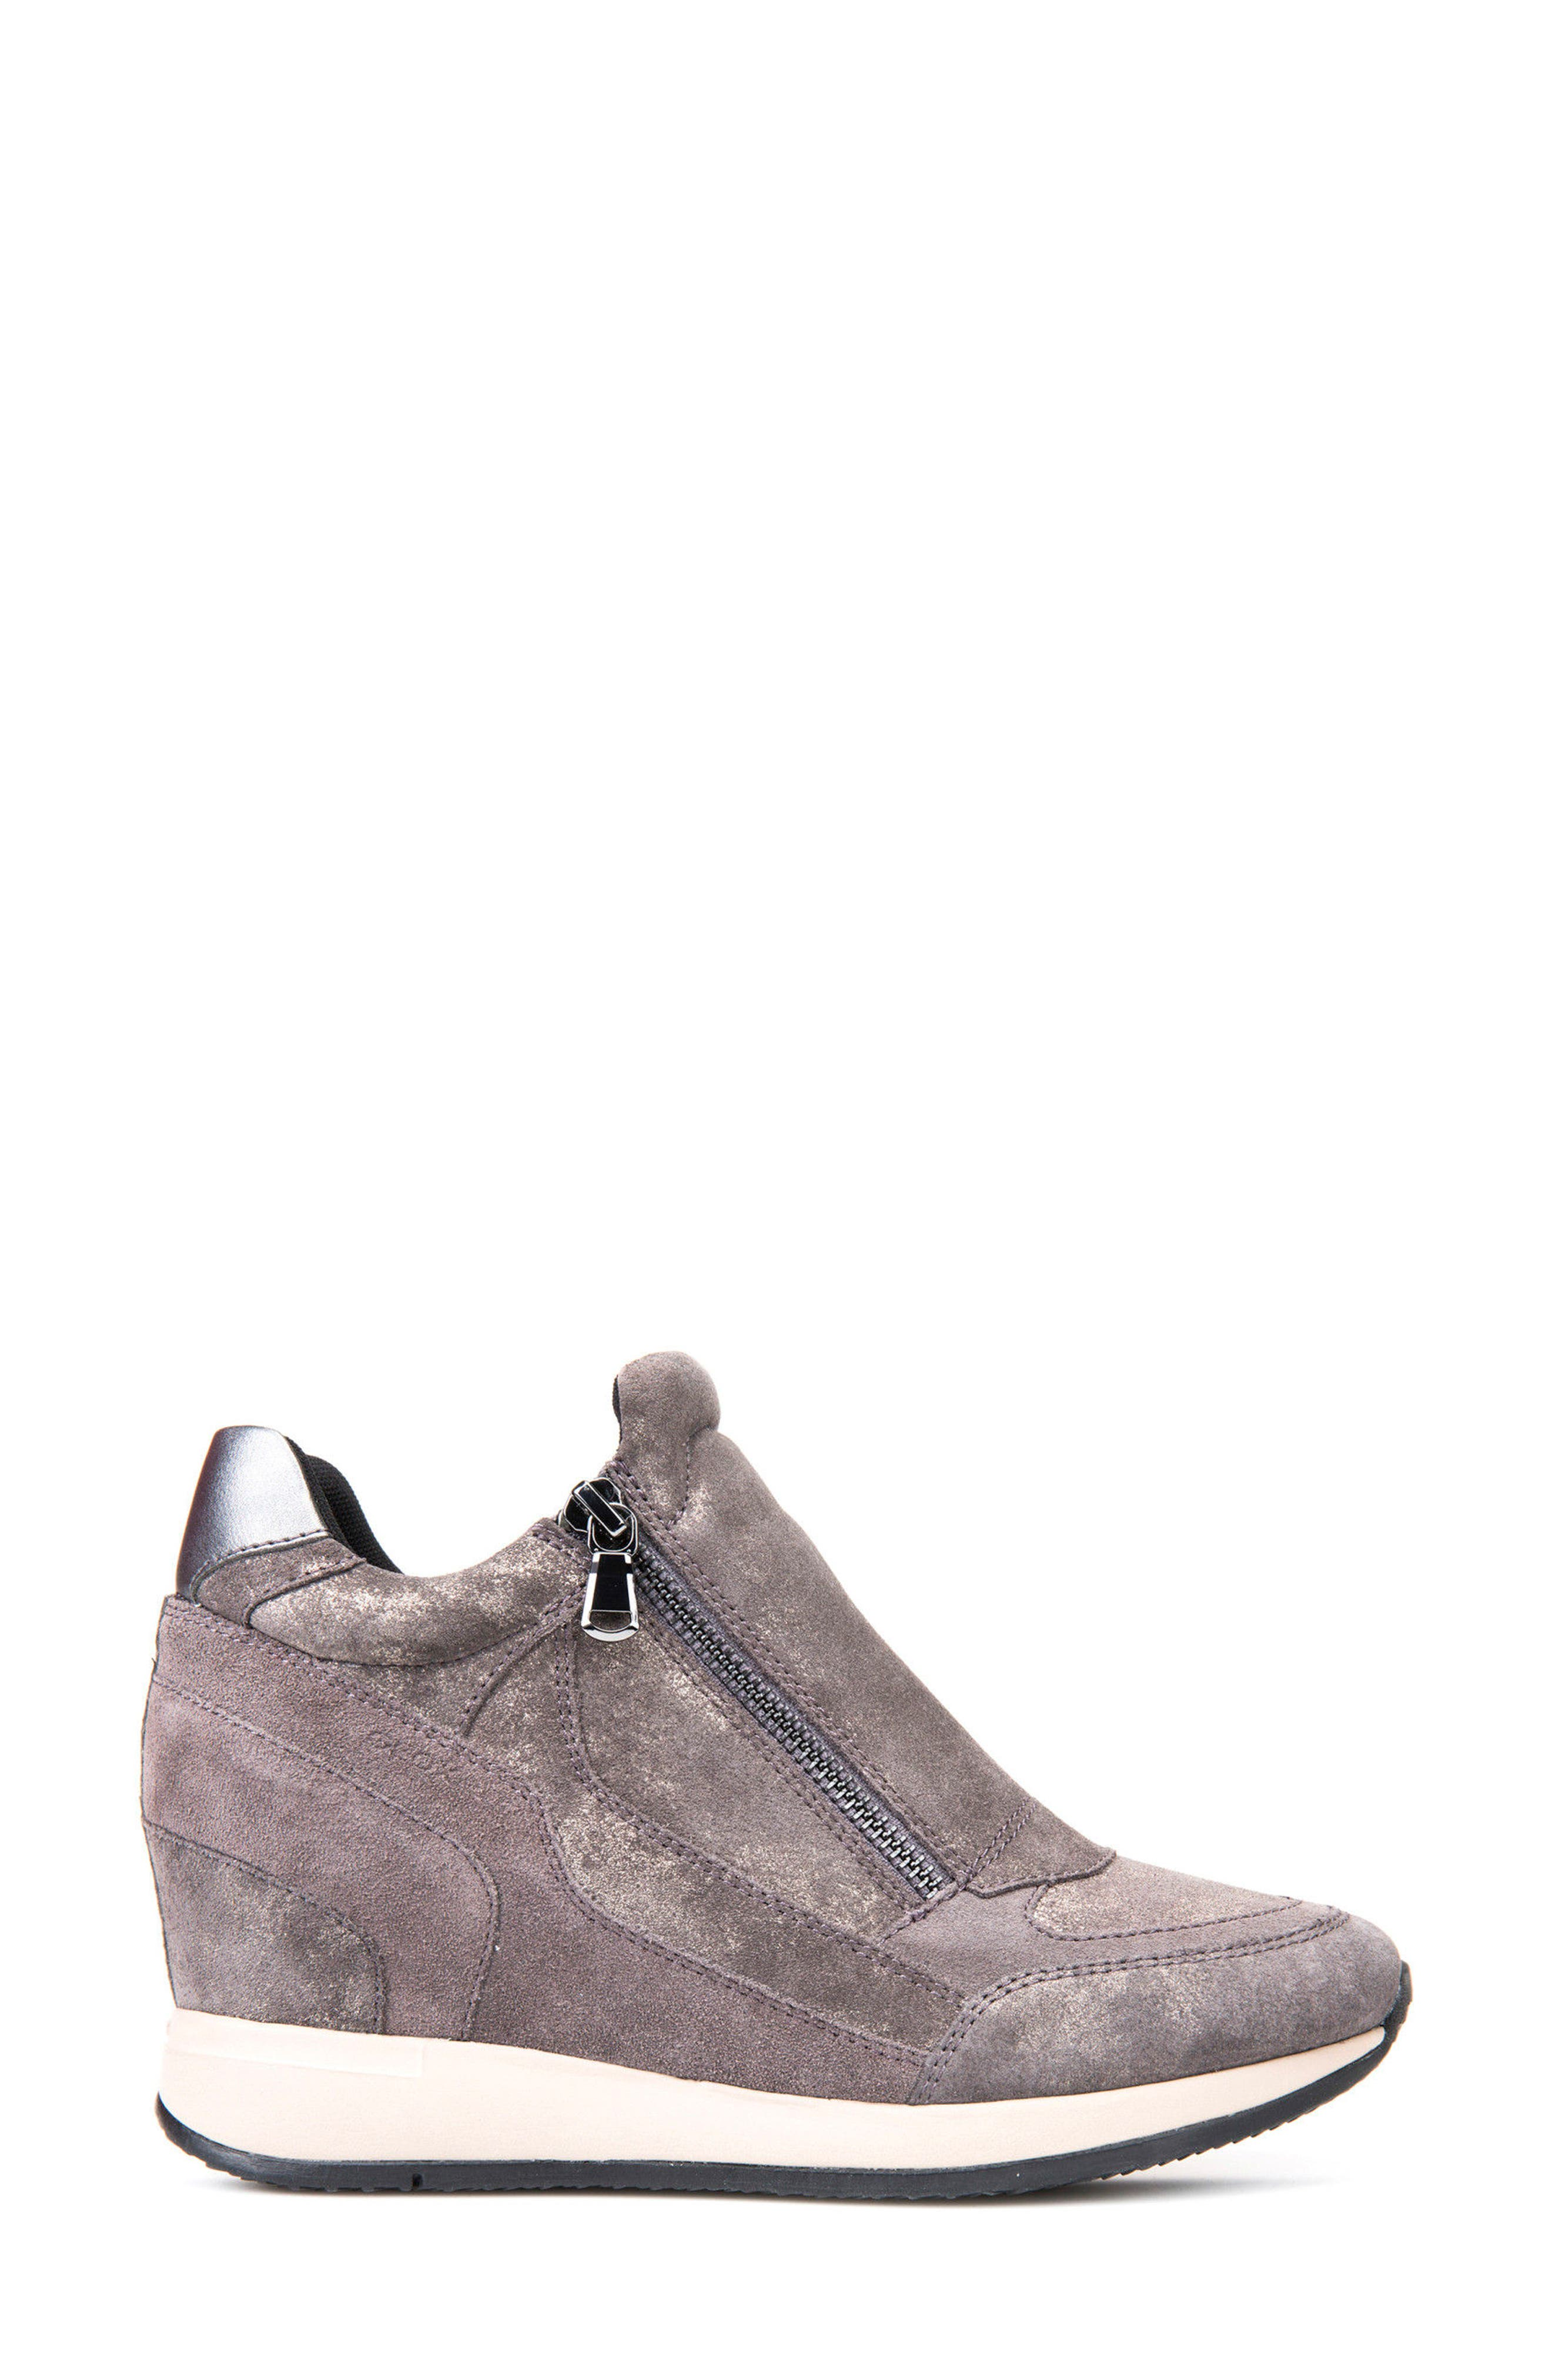 Nydame Wedge Sneaker,                             Alternate thumbnail 3, color,                             Dark Grey Leather